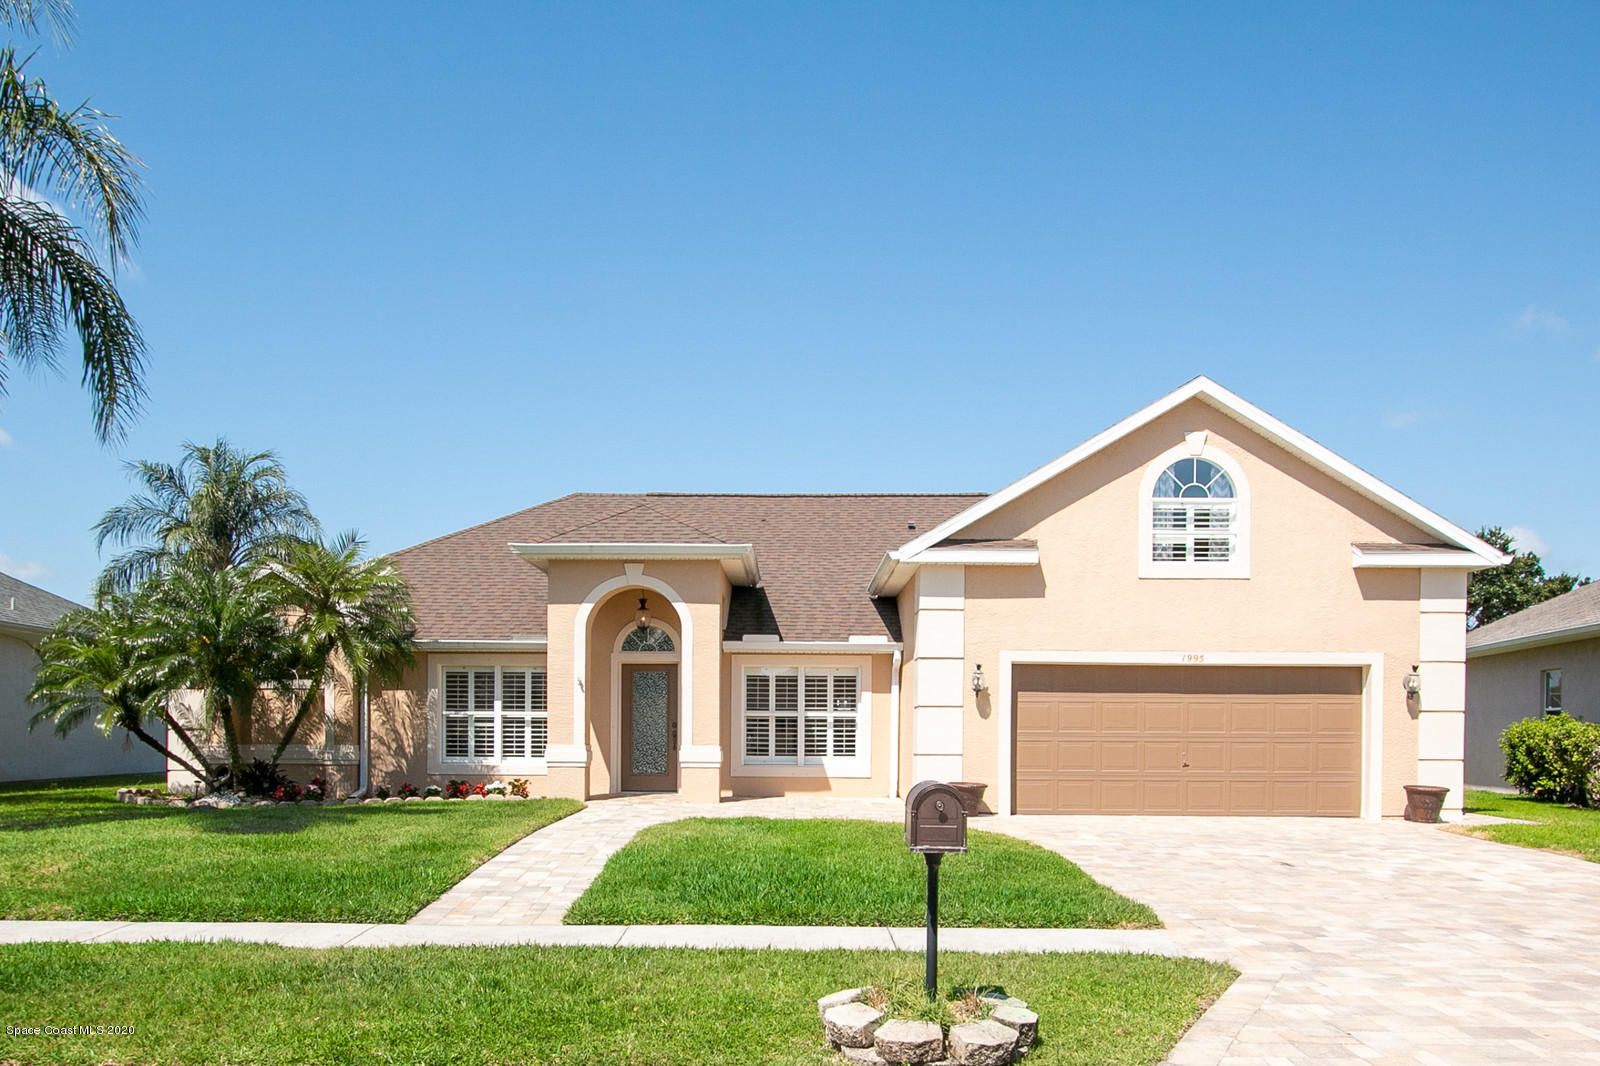 1995 Thesy Drive, Melbourne, FL 32940 now has a new price ...